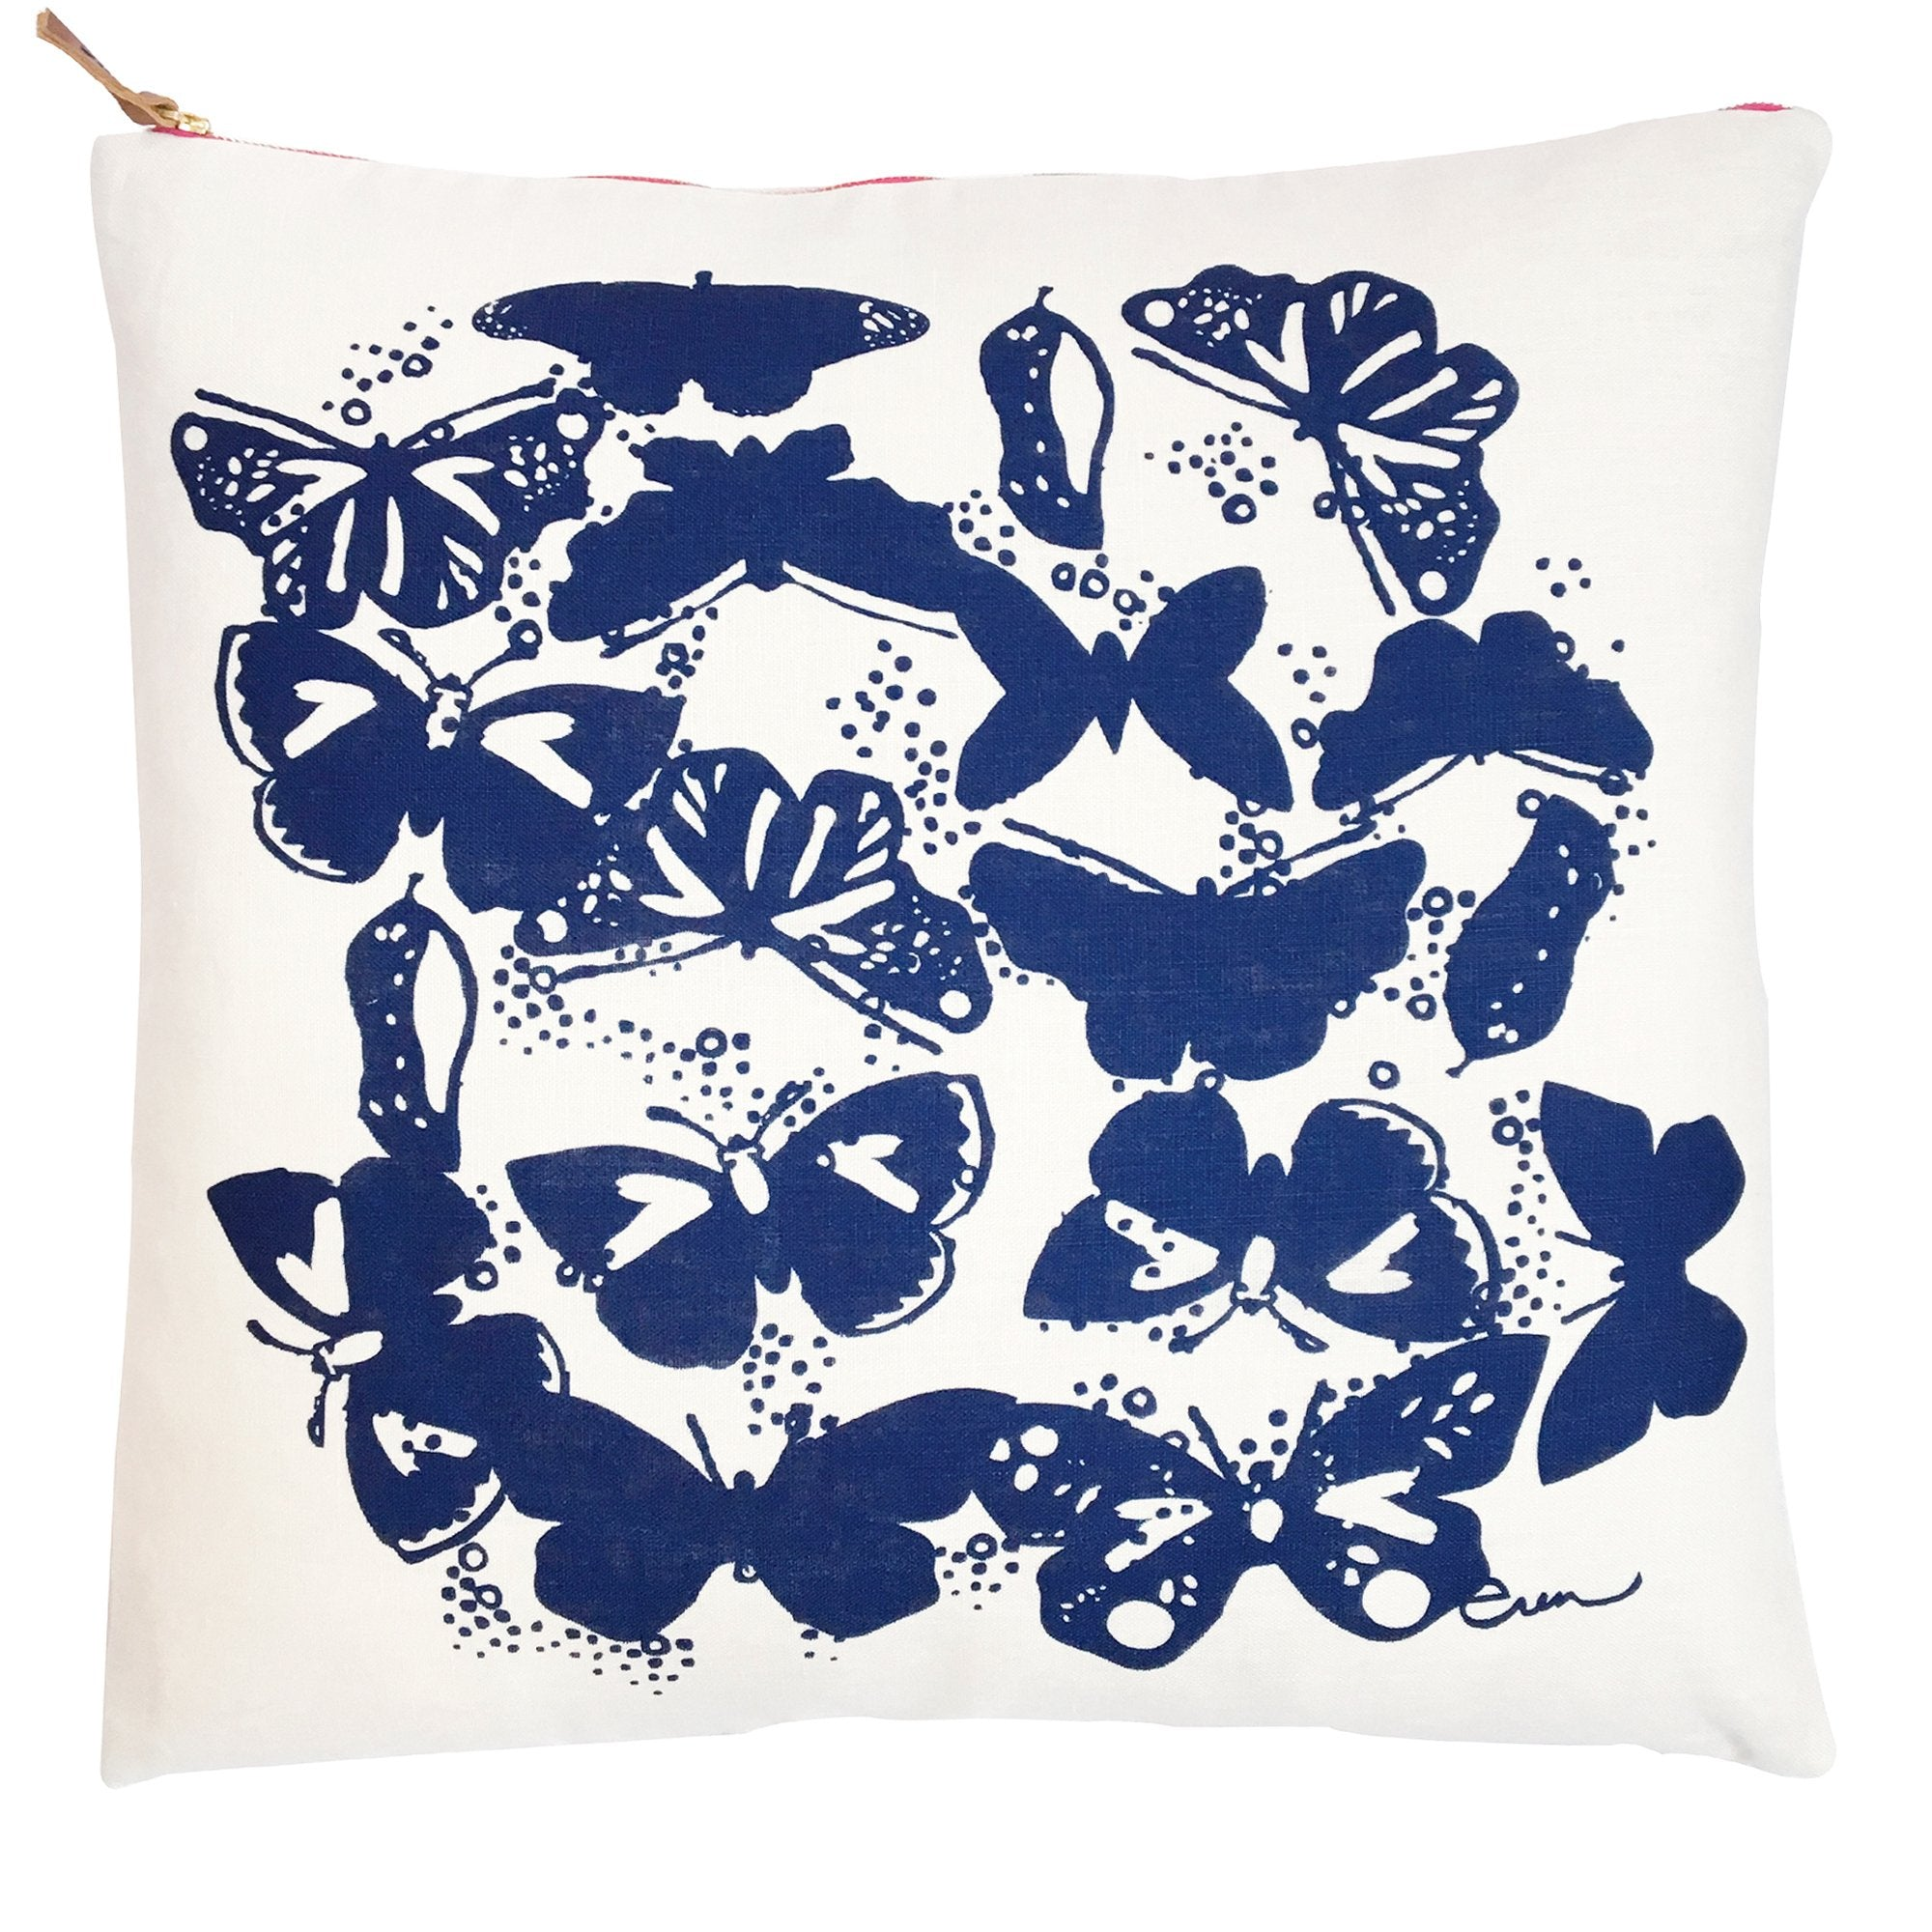 NAVY BUTTERFLIES LINEN PILLOW